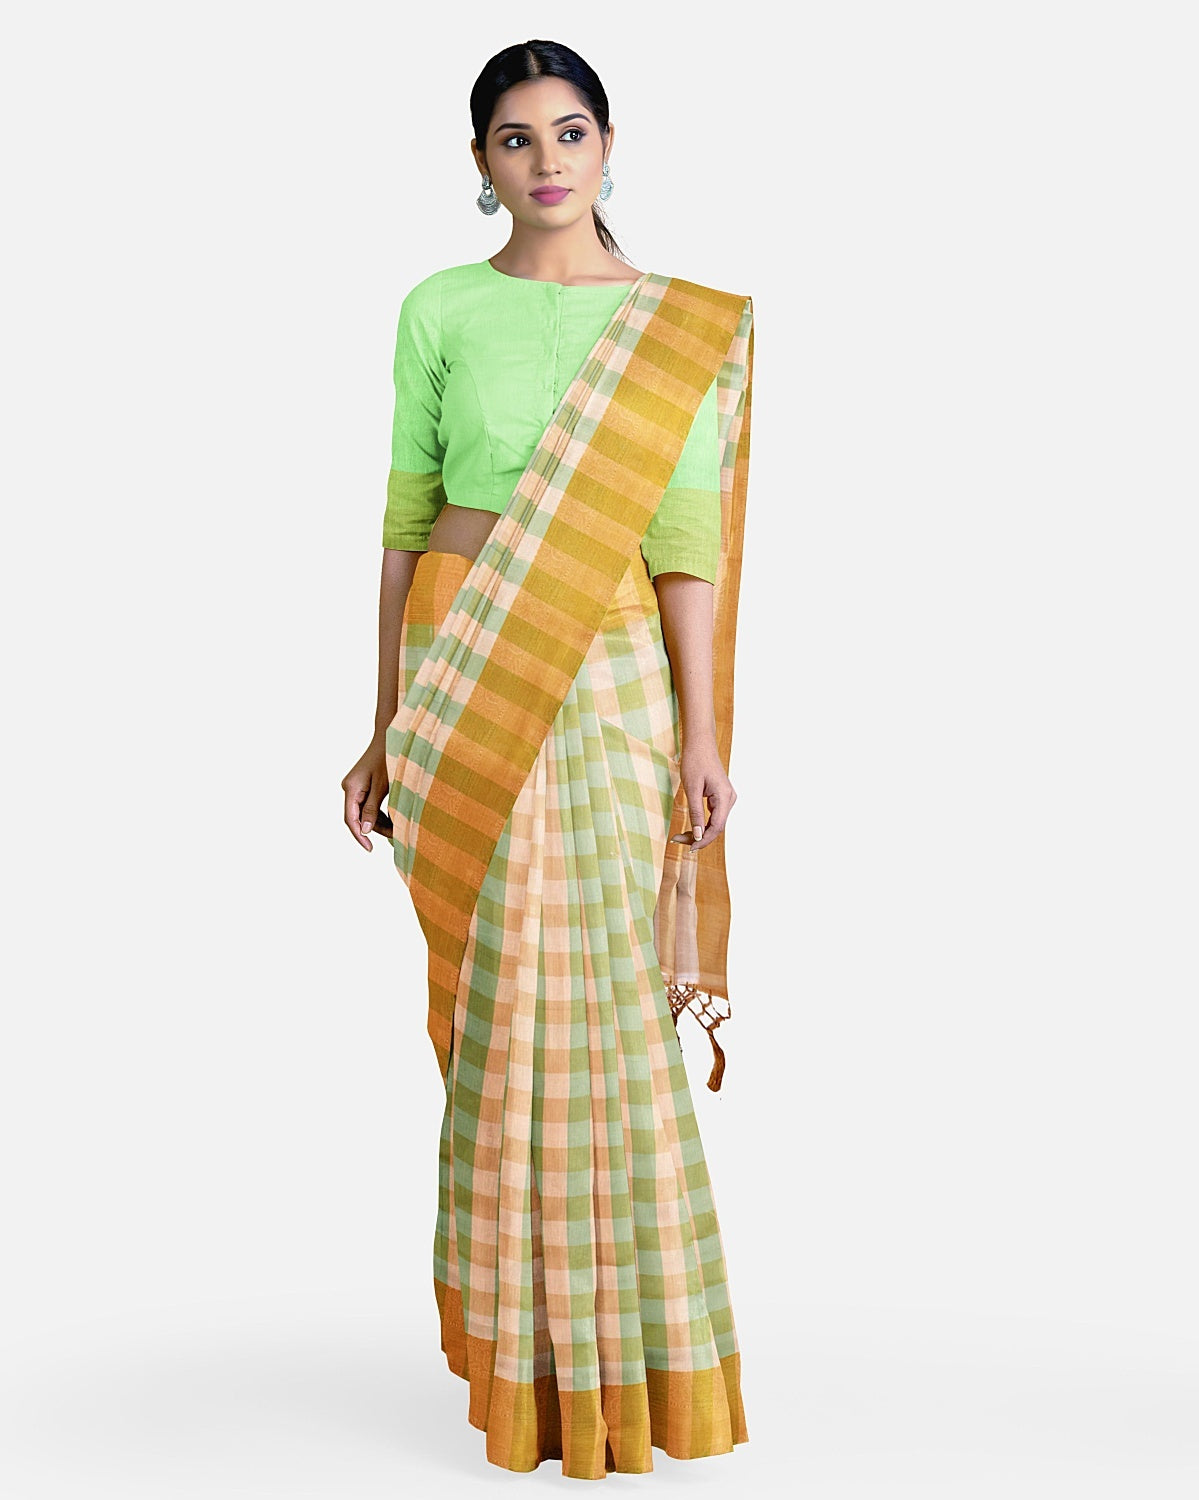 Sea-green and cream Check Cotton Saree